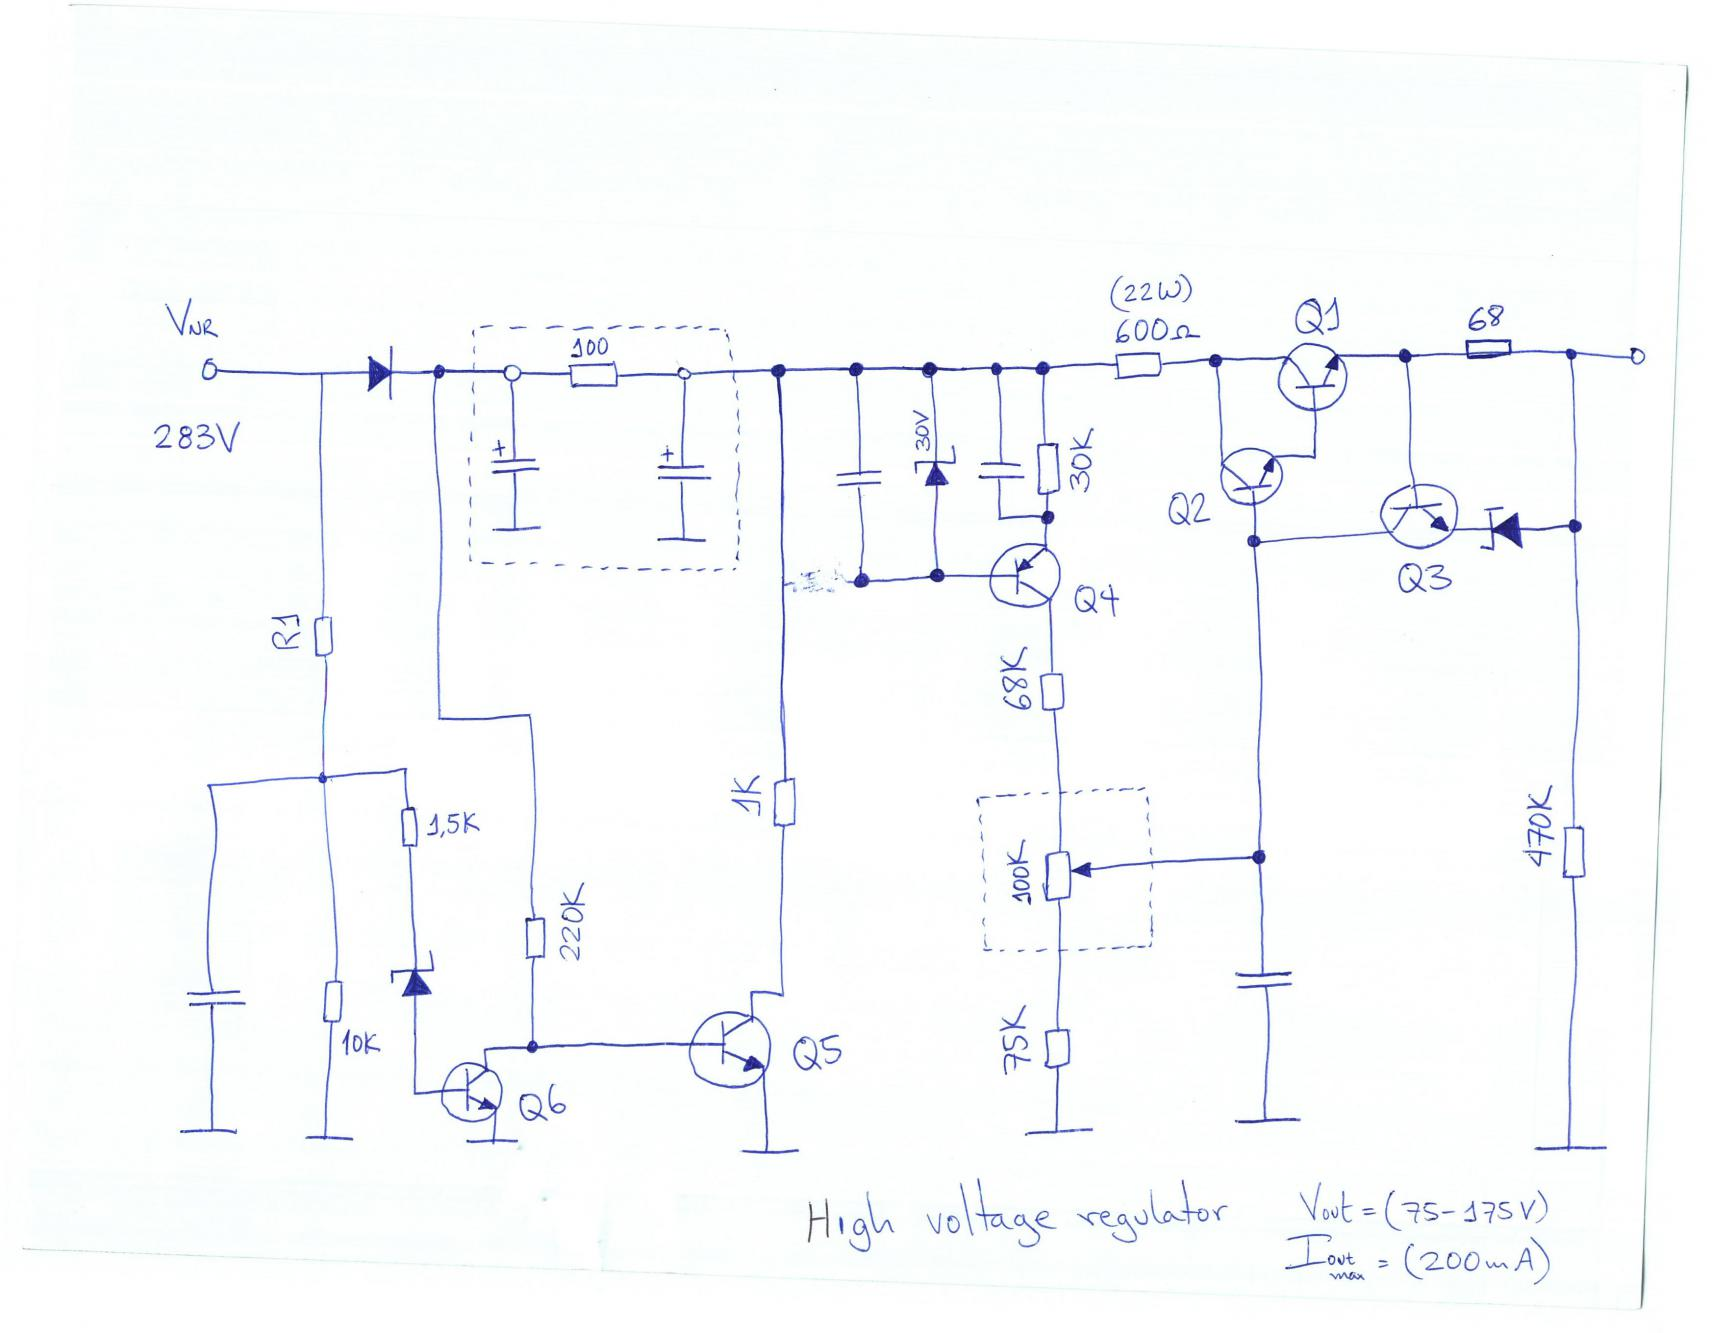 Power Supply Page 20 Circuits Adjustable Dc By Lm338 Electronic Projects Variable For Supplying Valve Amp Build